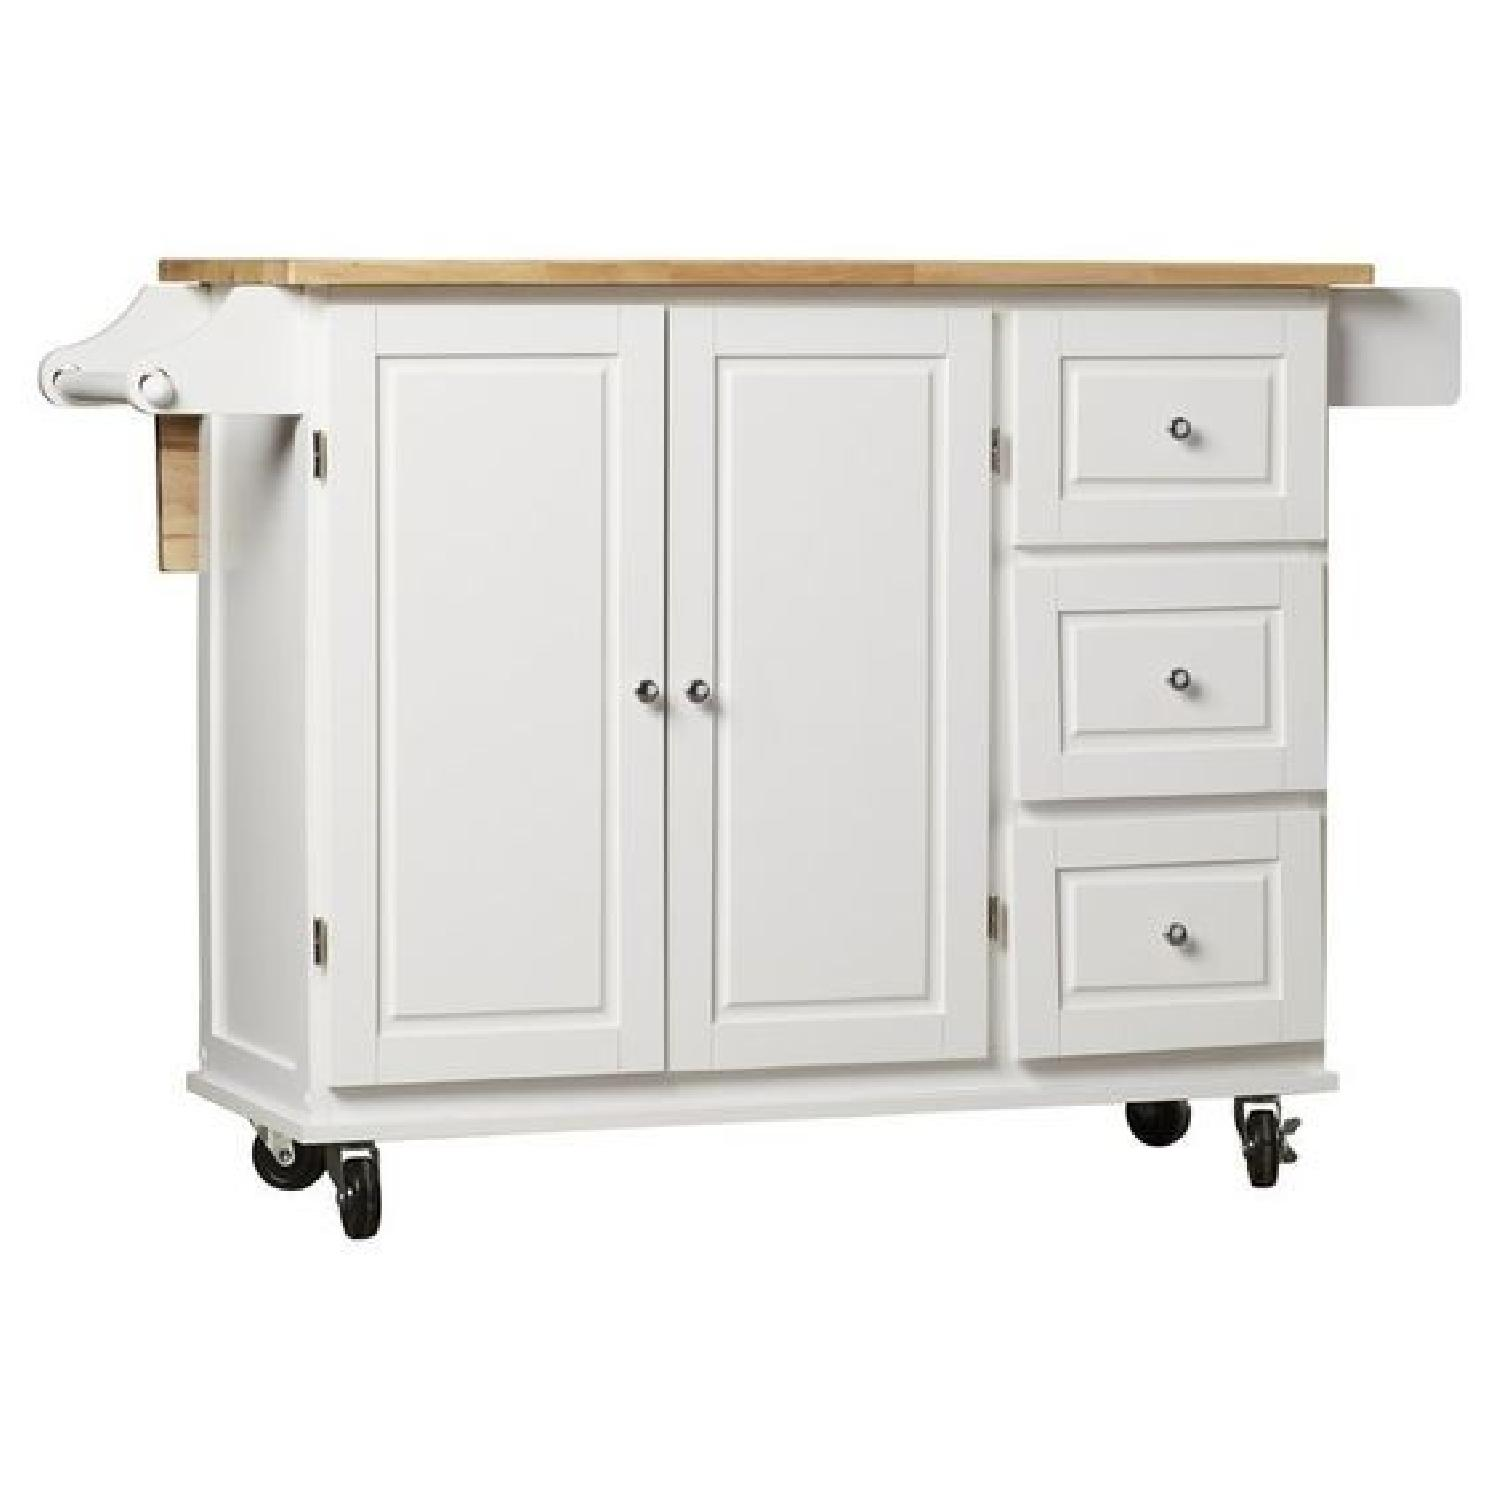 Arpdale Kitchen Island w/ Natural Wood Top